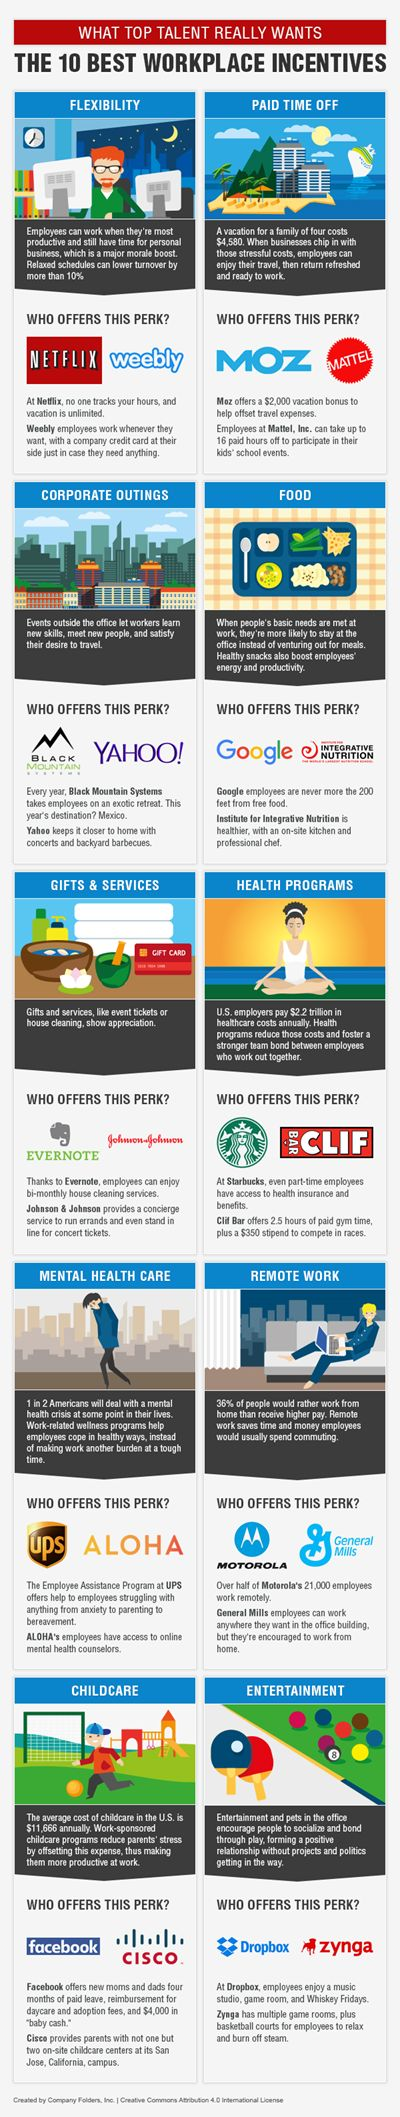 Looking at multiple offers? Some of these incentives could help you choose a good fit!